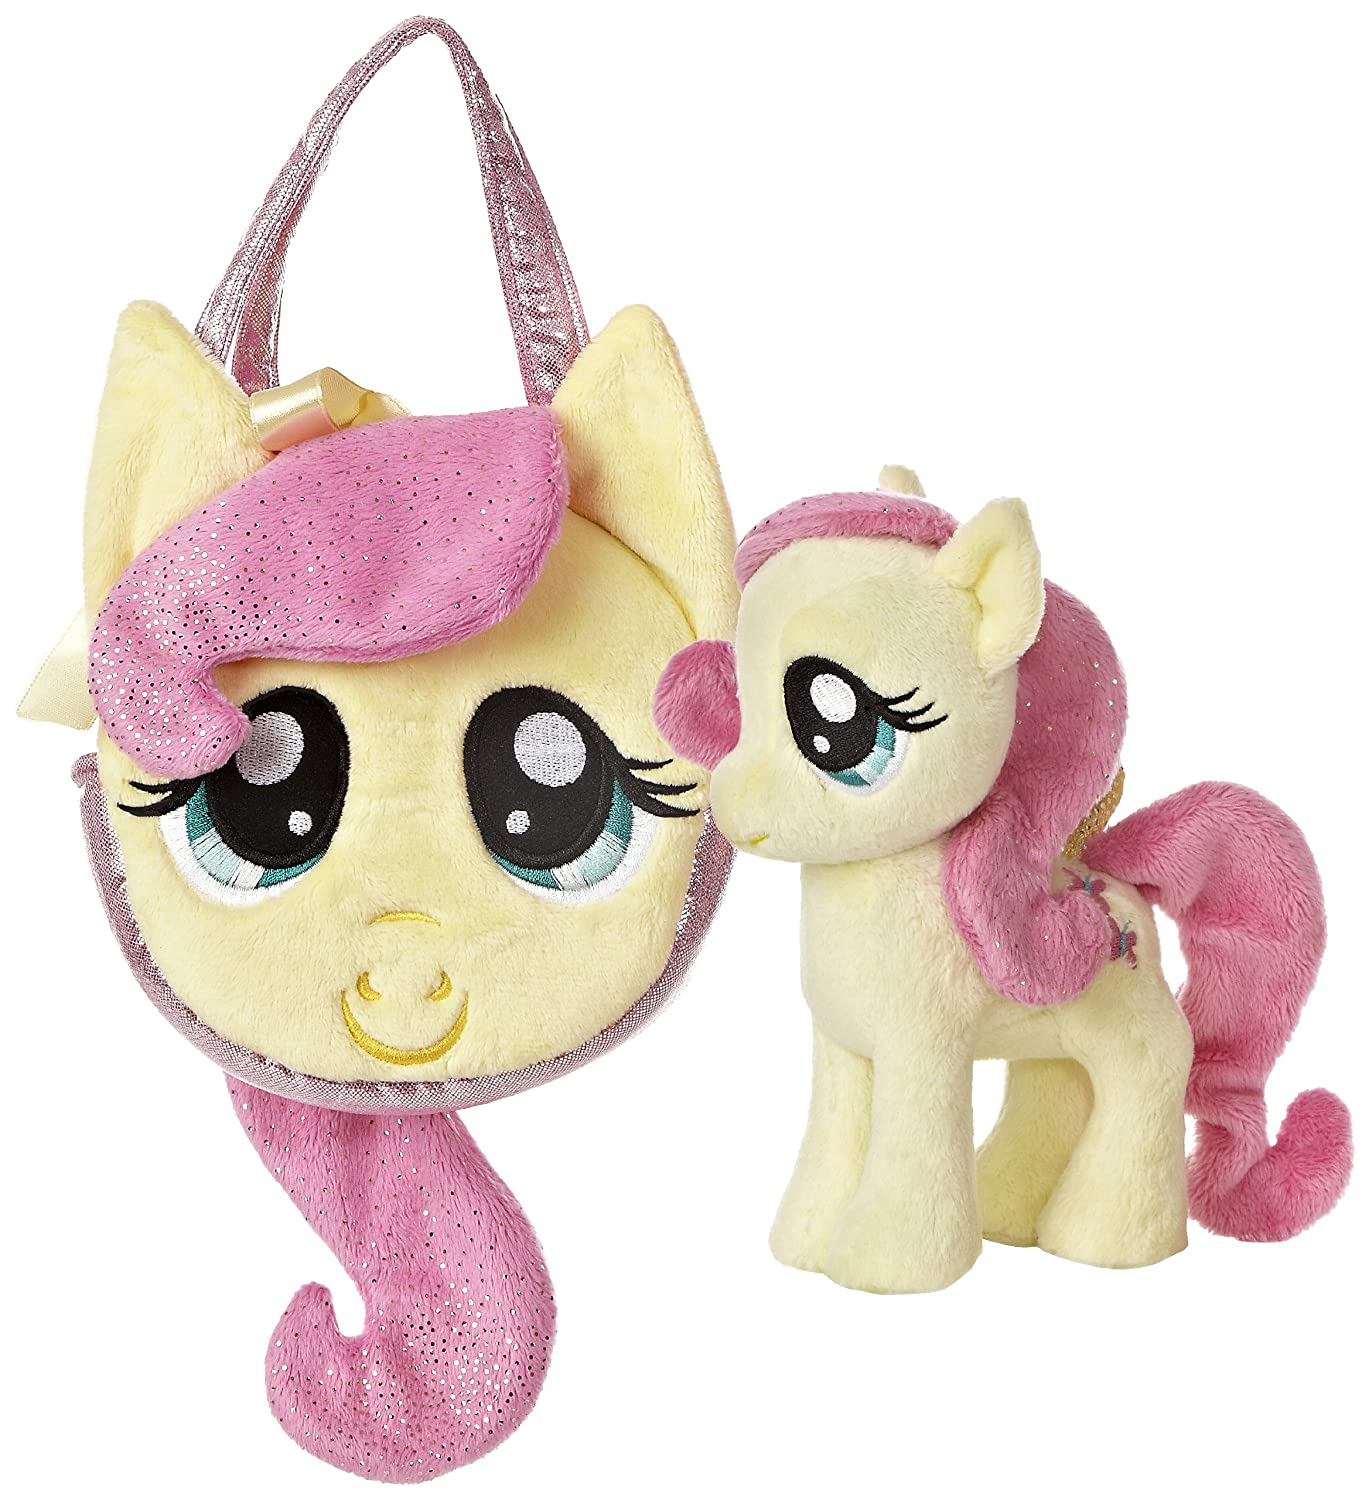 My Little Pony Friendship is Magic Pony Tail Carrier Purse Fluttershy